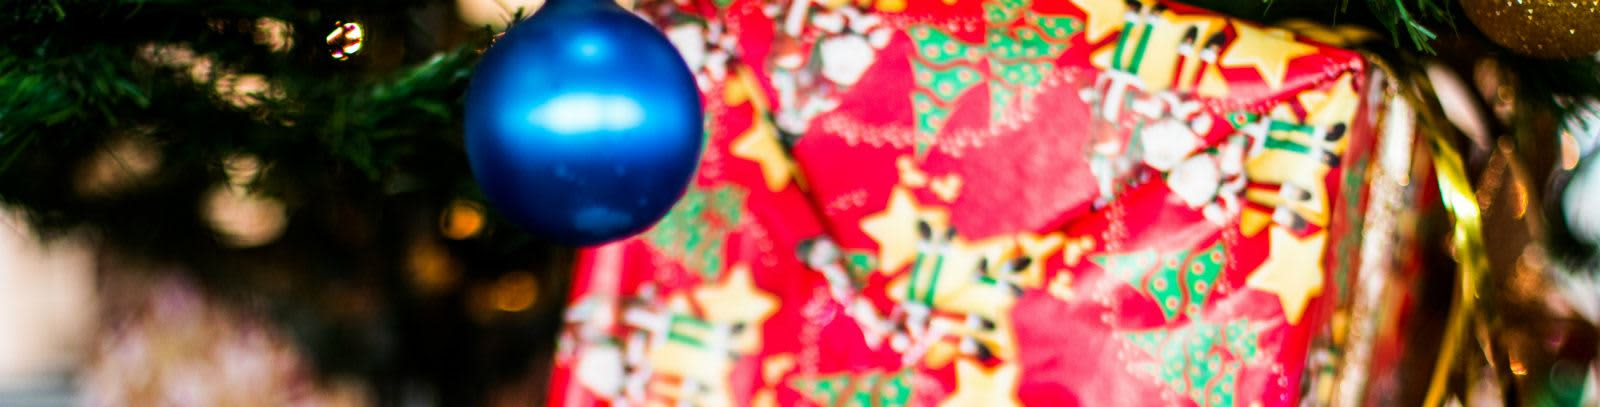 The Gift of Now: Christmas - Grand Velas Los Cabos, Mexico